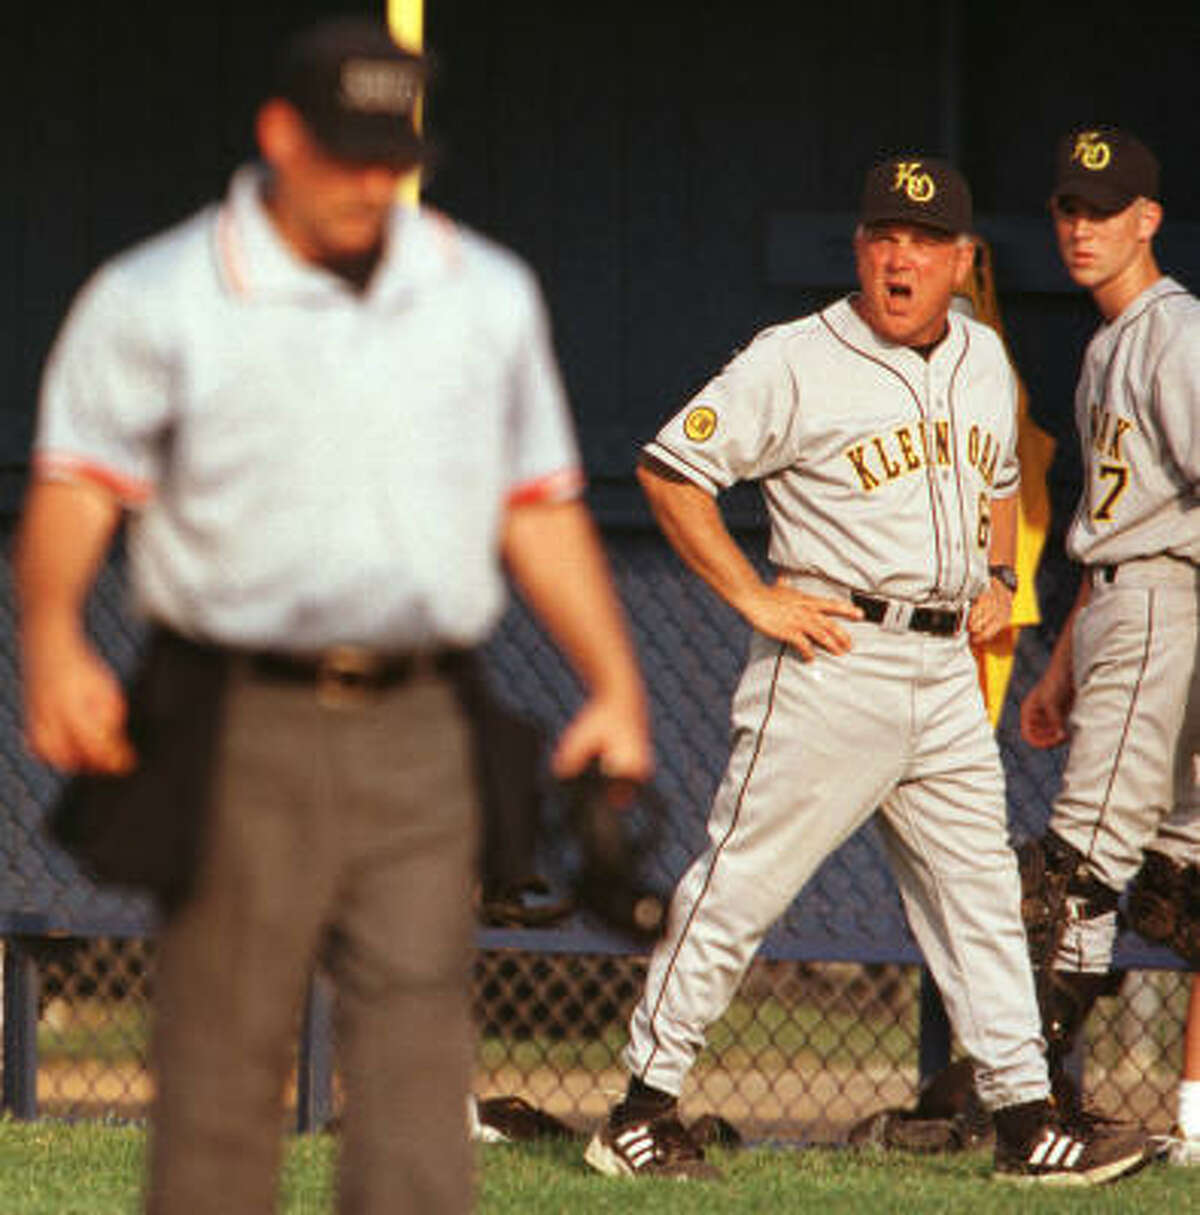 Here's the 1990s-style Dale Westmoreland arguing a call when he was with Klein Oak.